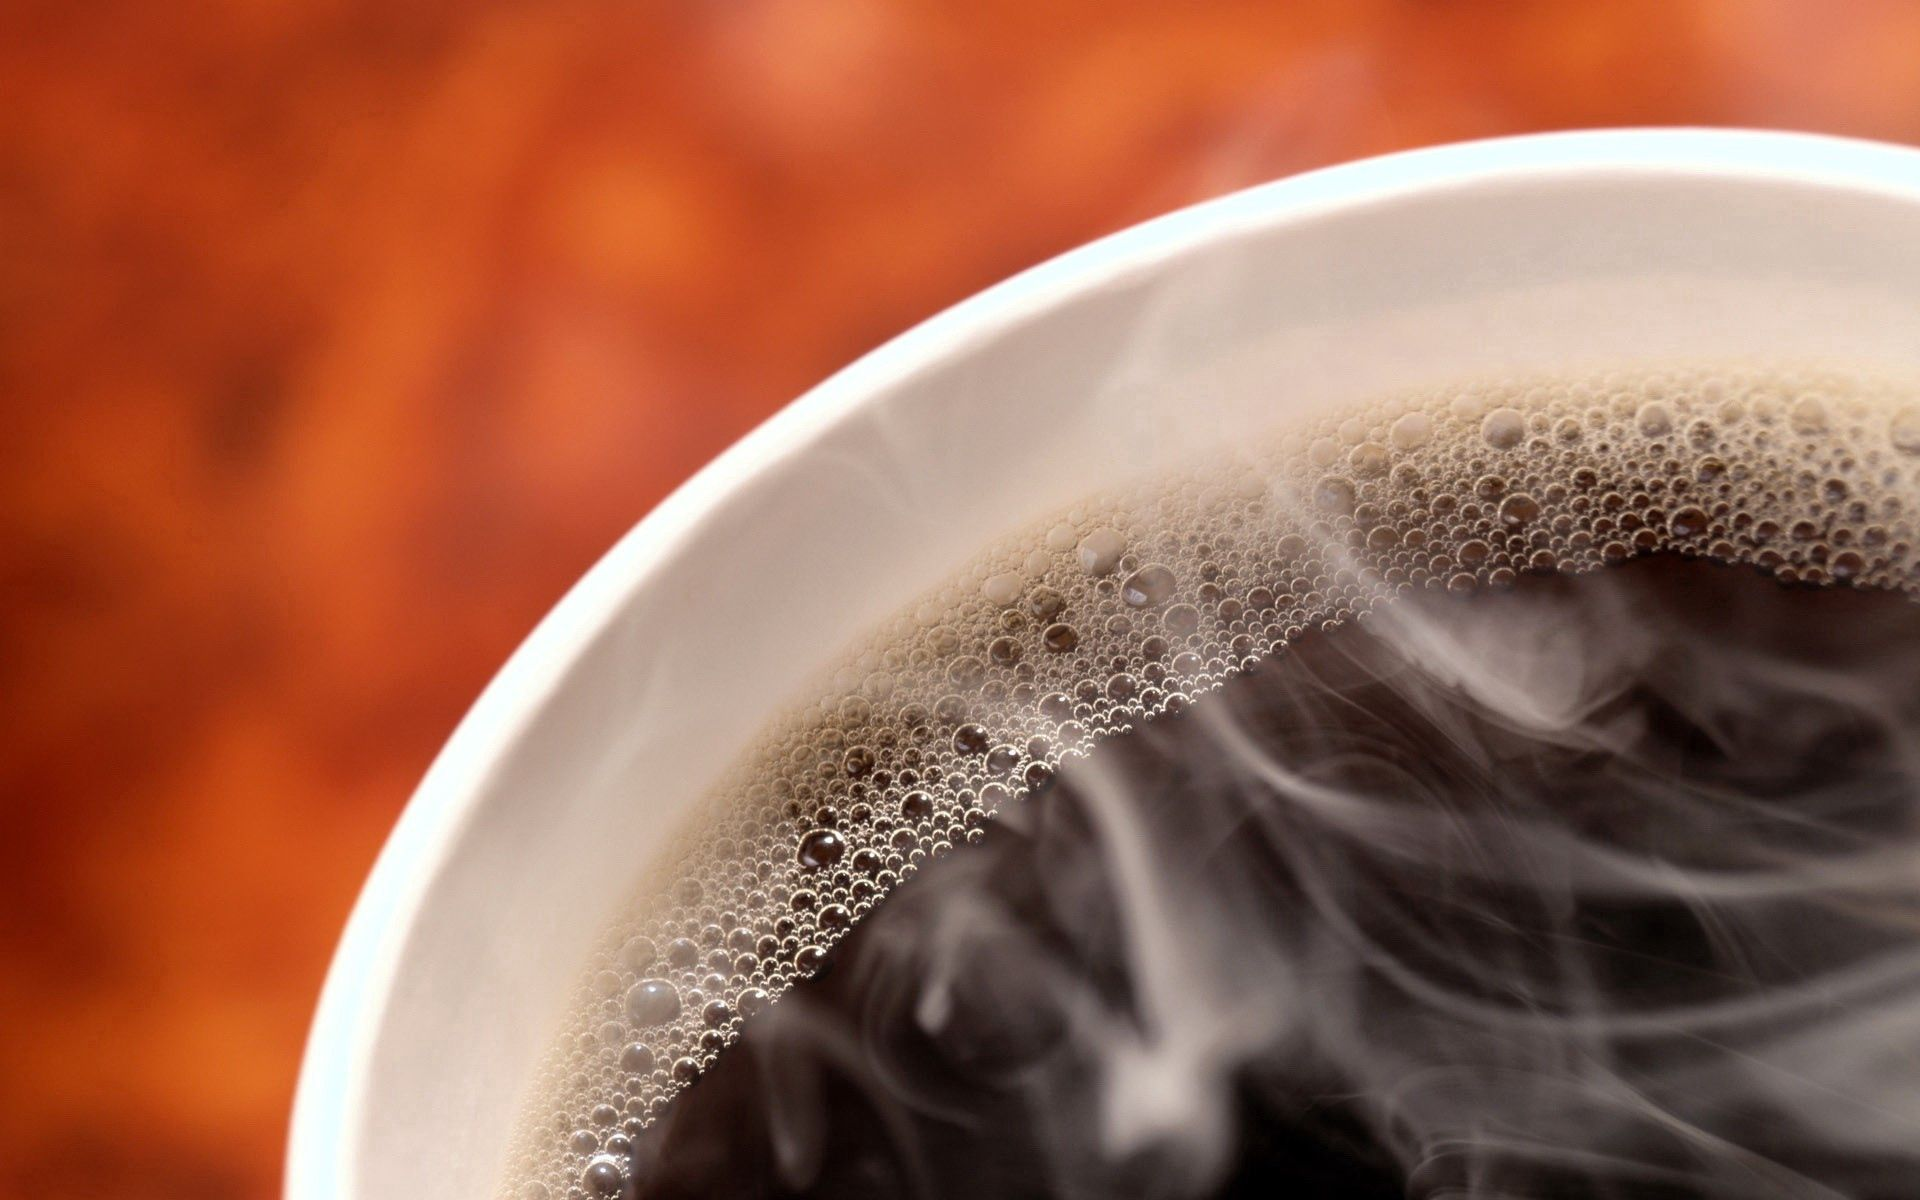 79237 download wallpaper Food, Cup, Coffee, Drink, Beverage screensavers and pictures for free